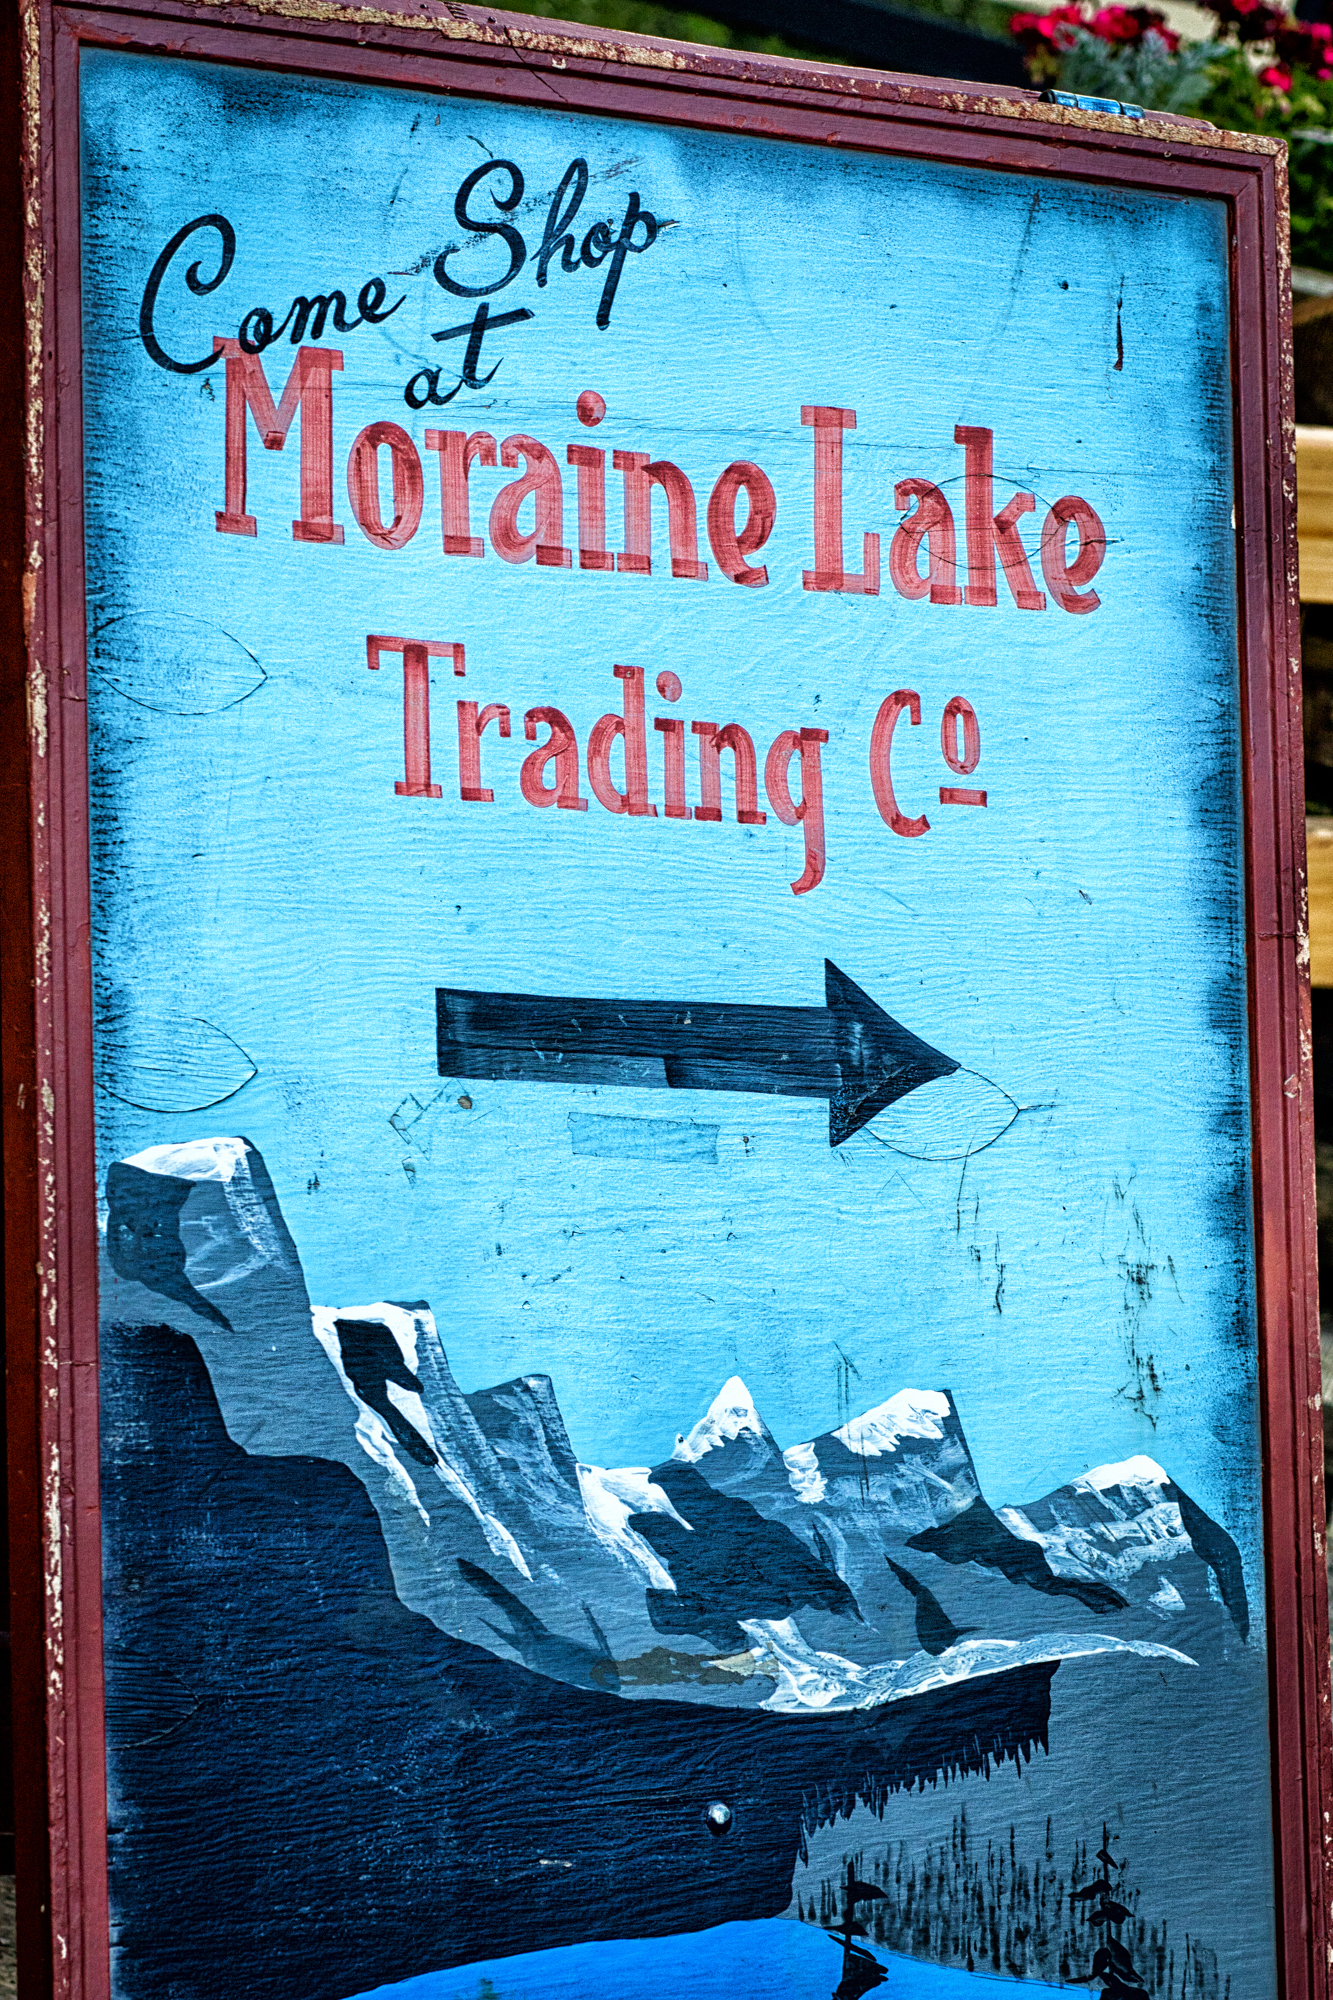 Moraine Lake Lodge sign